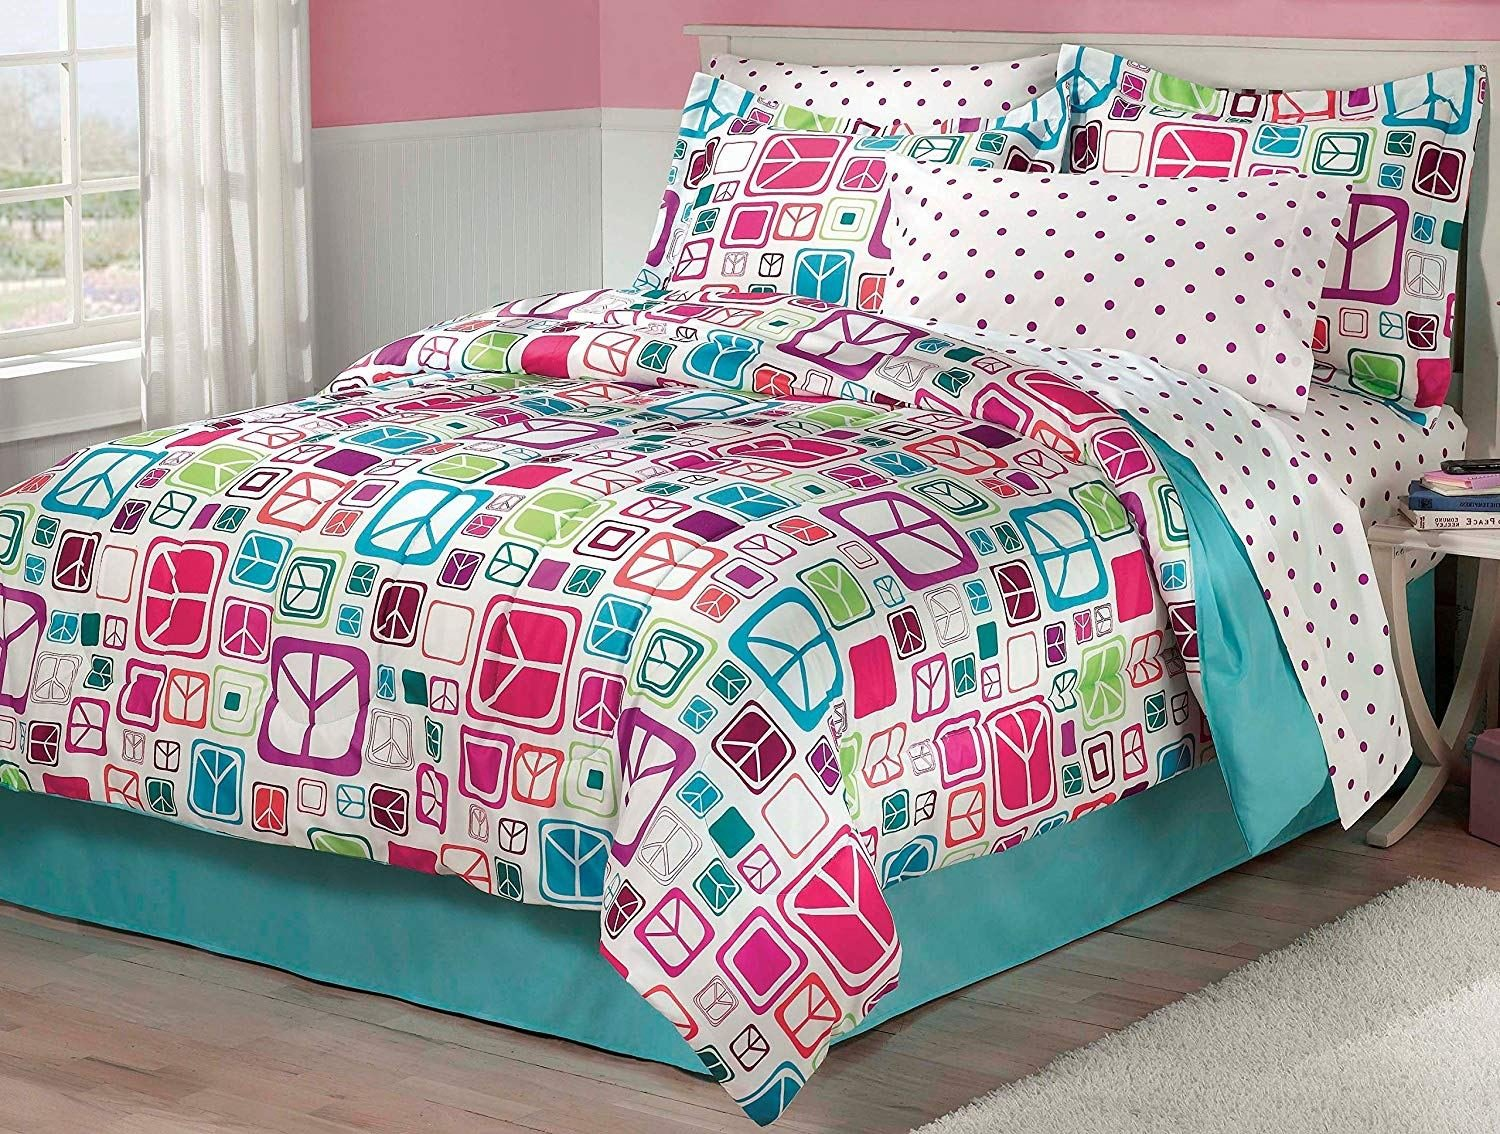 Best My Room Peace Out Girls Comforter Set With Bedskirt Teal With Pictures